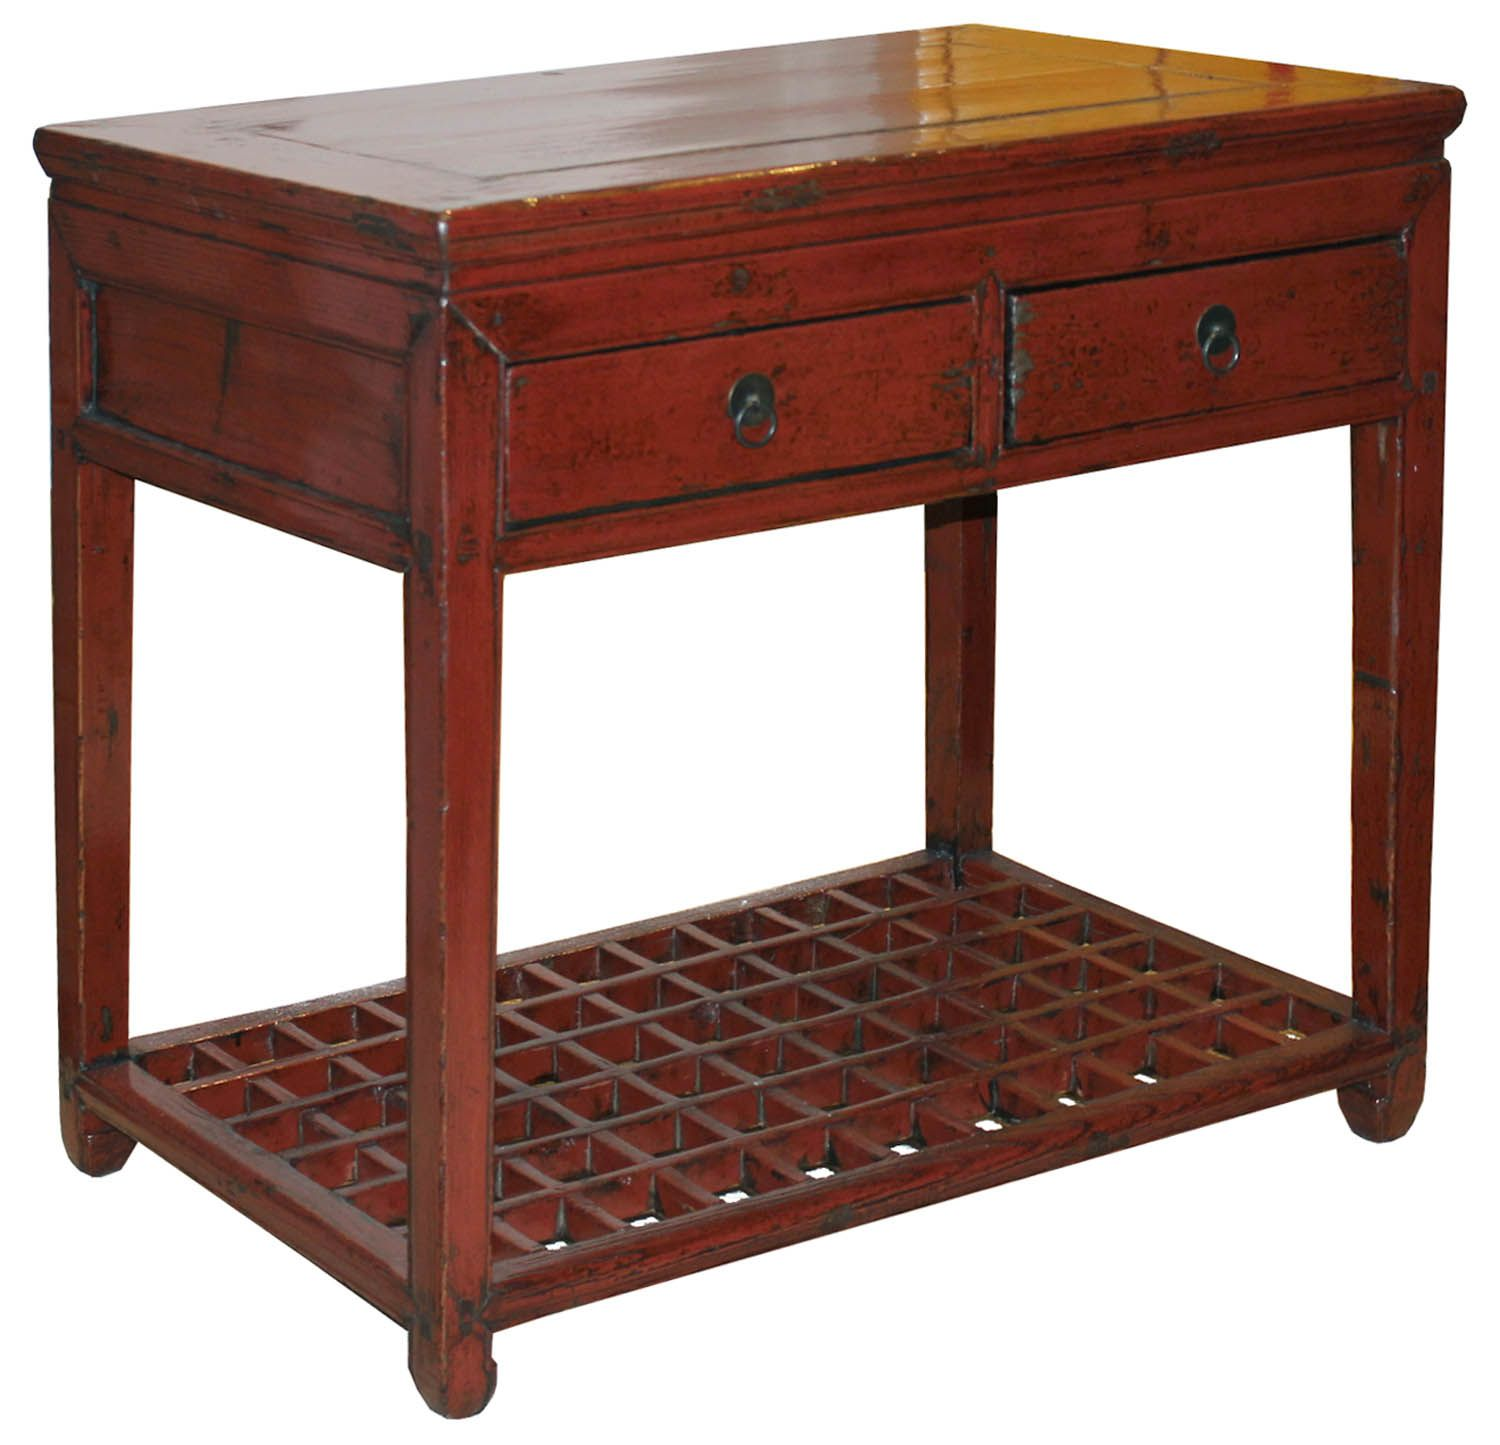 red entry table. Vintage Two Drawer Desk With Horse Hoof-style Feet And Lattice Bottom Shelf Can Be Red Entry Table R